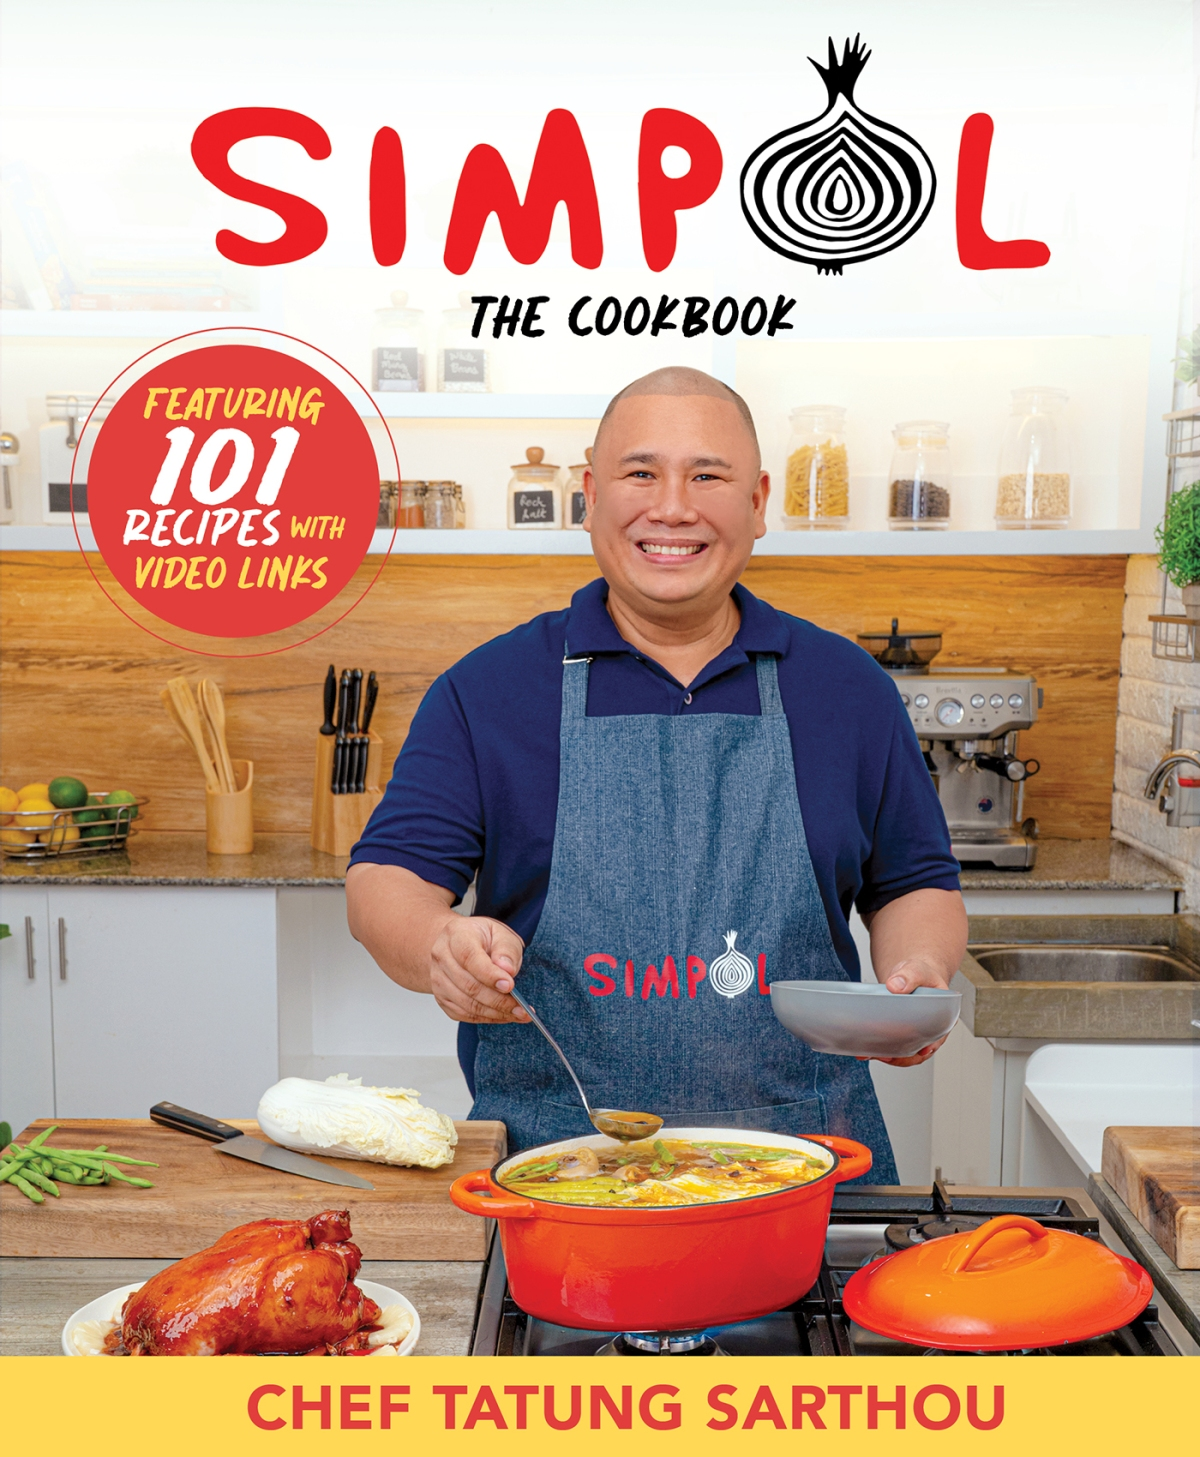 Simpol The Cookbook by Chef Tatung Sarthou